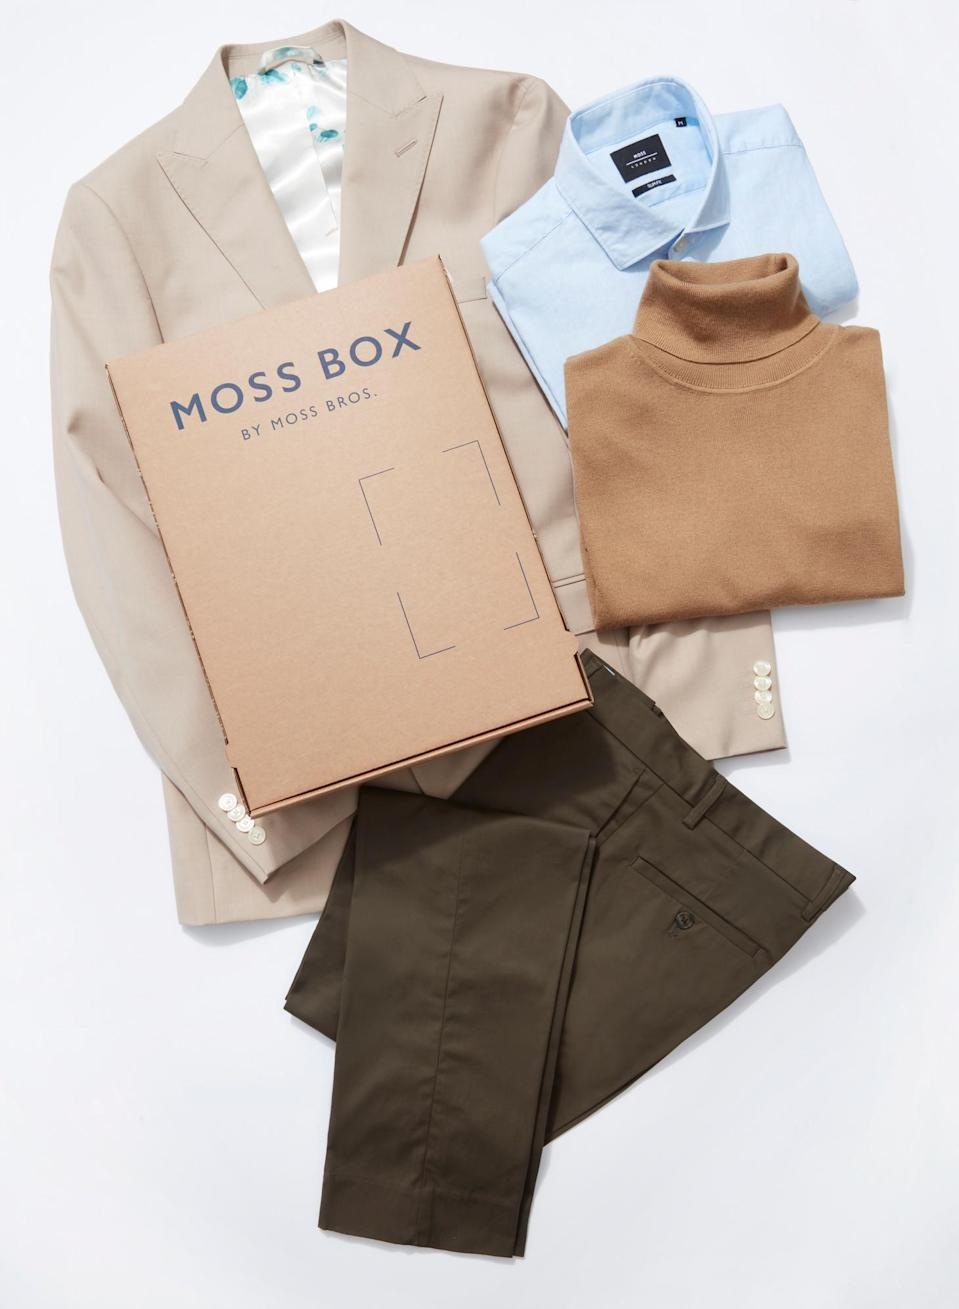 The 'Moss Box' will allow customers to choose two items and make unlimited swaps (Moss Bros/PA)